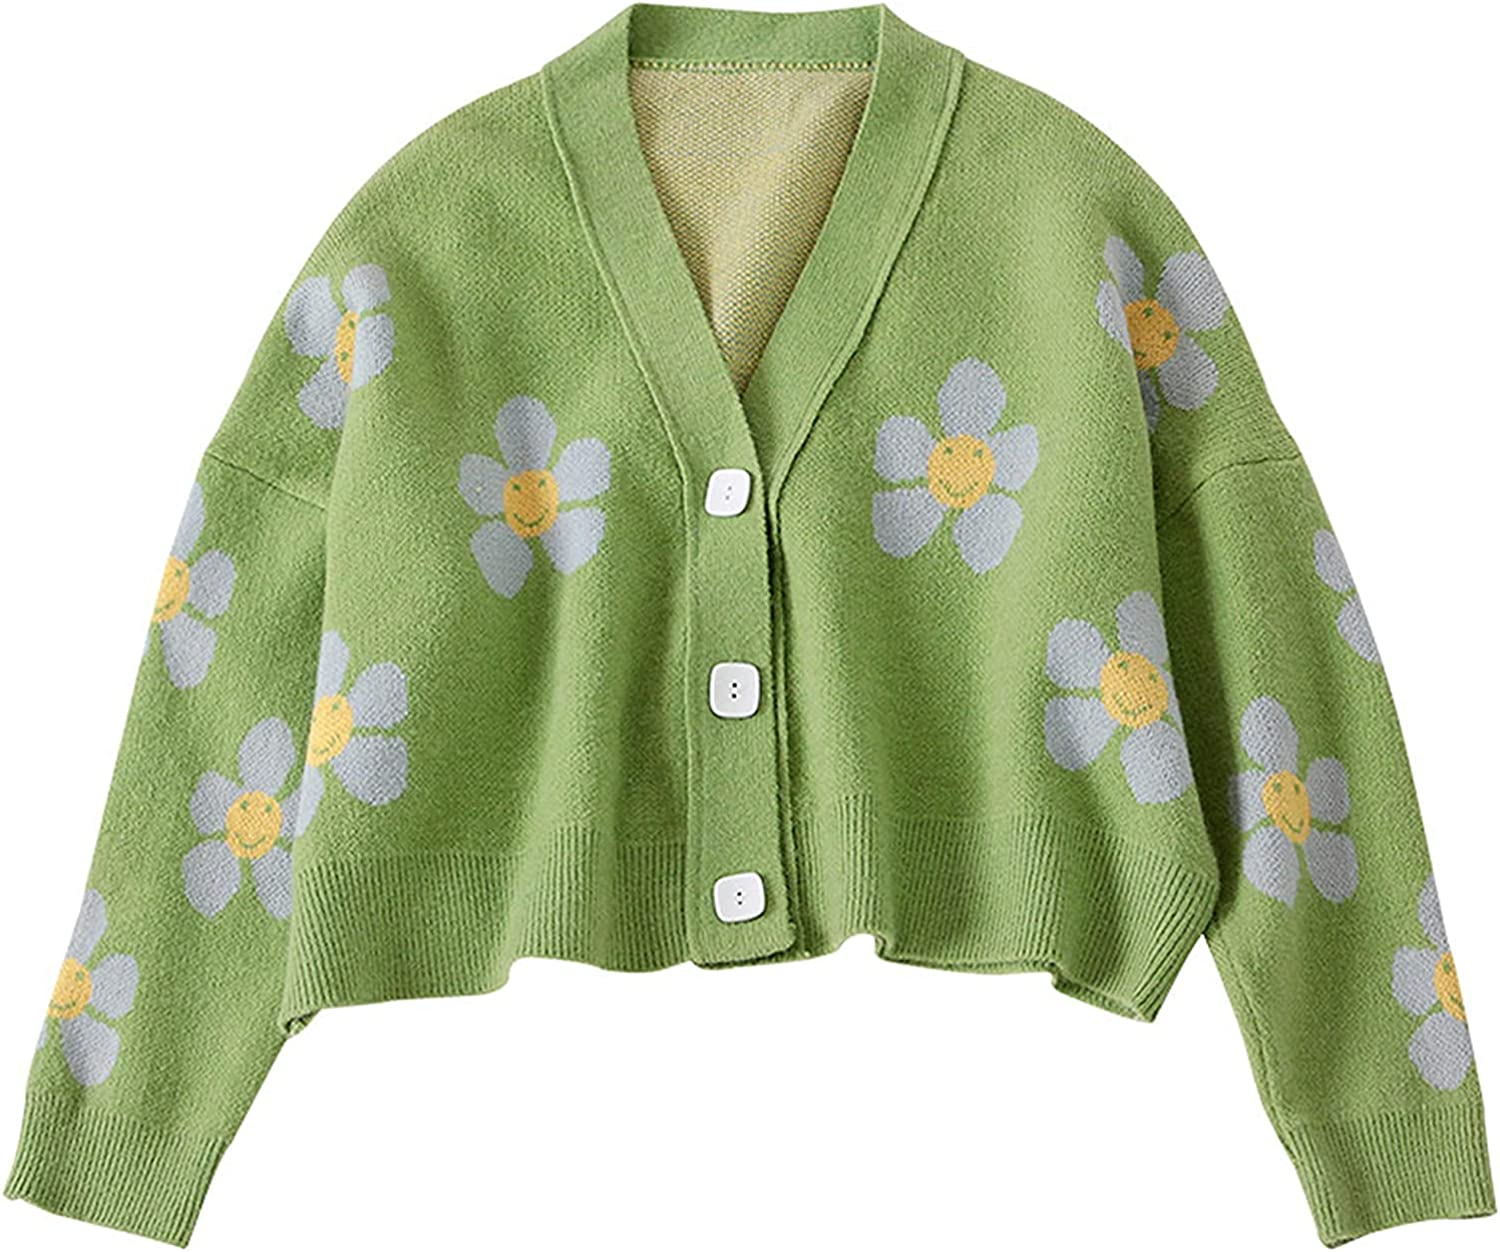 Women's Long Sleeve Button Down Casual Cardigan Knit Sweaters Vee Neck Floral Shrug Bolero